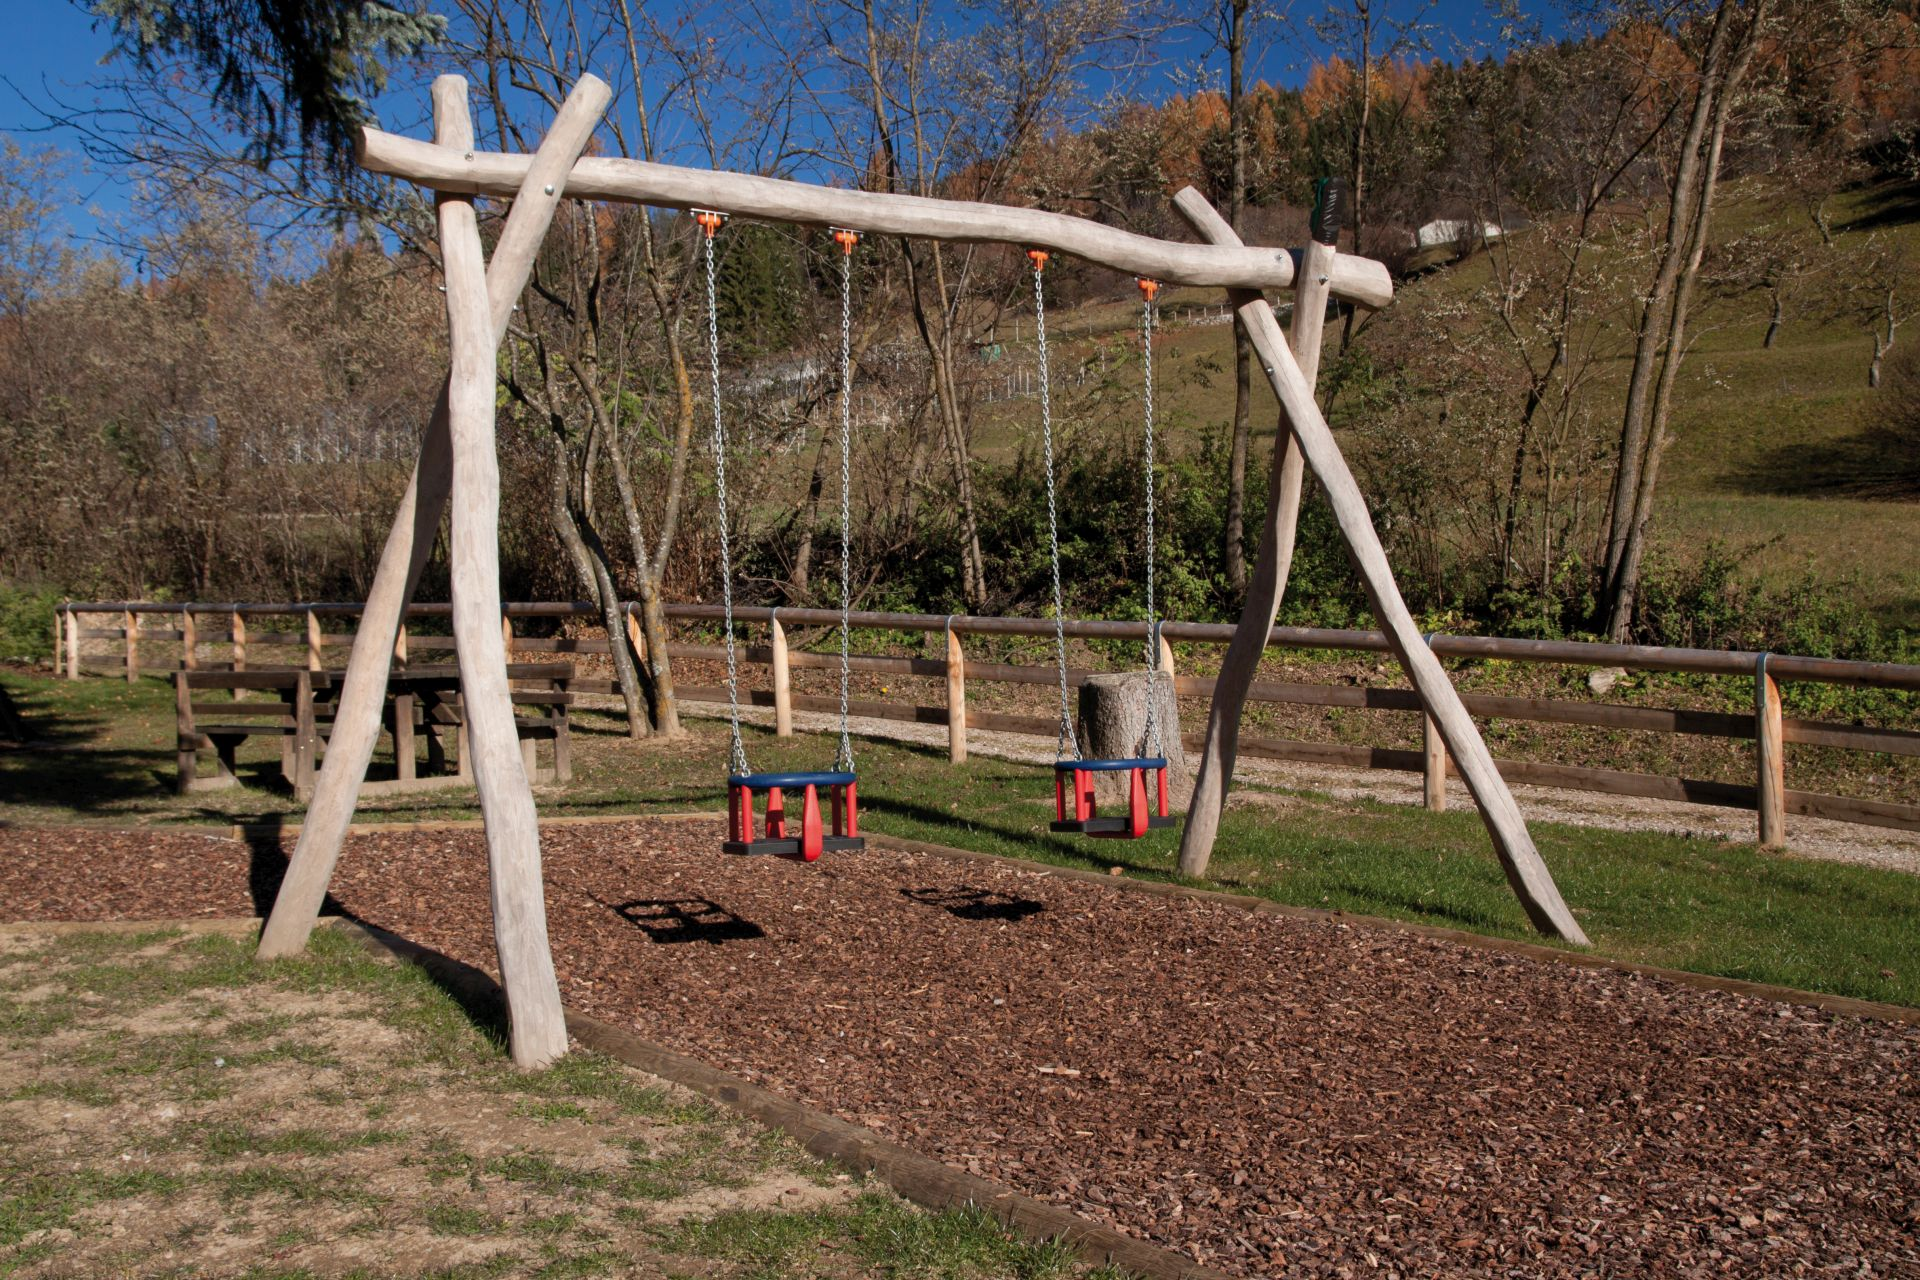 Holzhof COUNTRY (FACILITIES IN ROBINIA WOOD) Swing in robinia with 2 palm shape seats, posts for underground